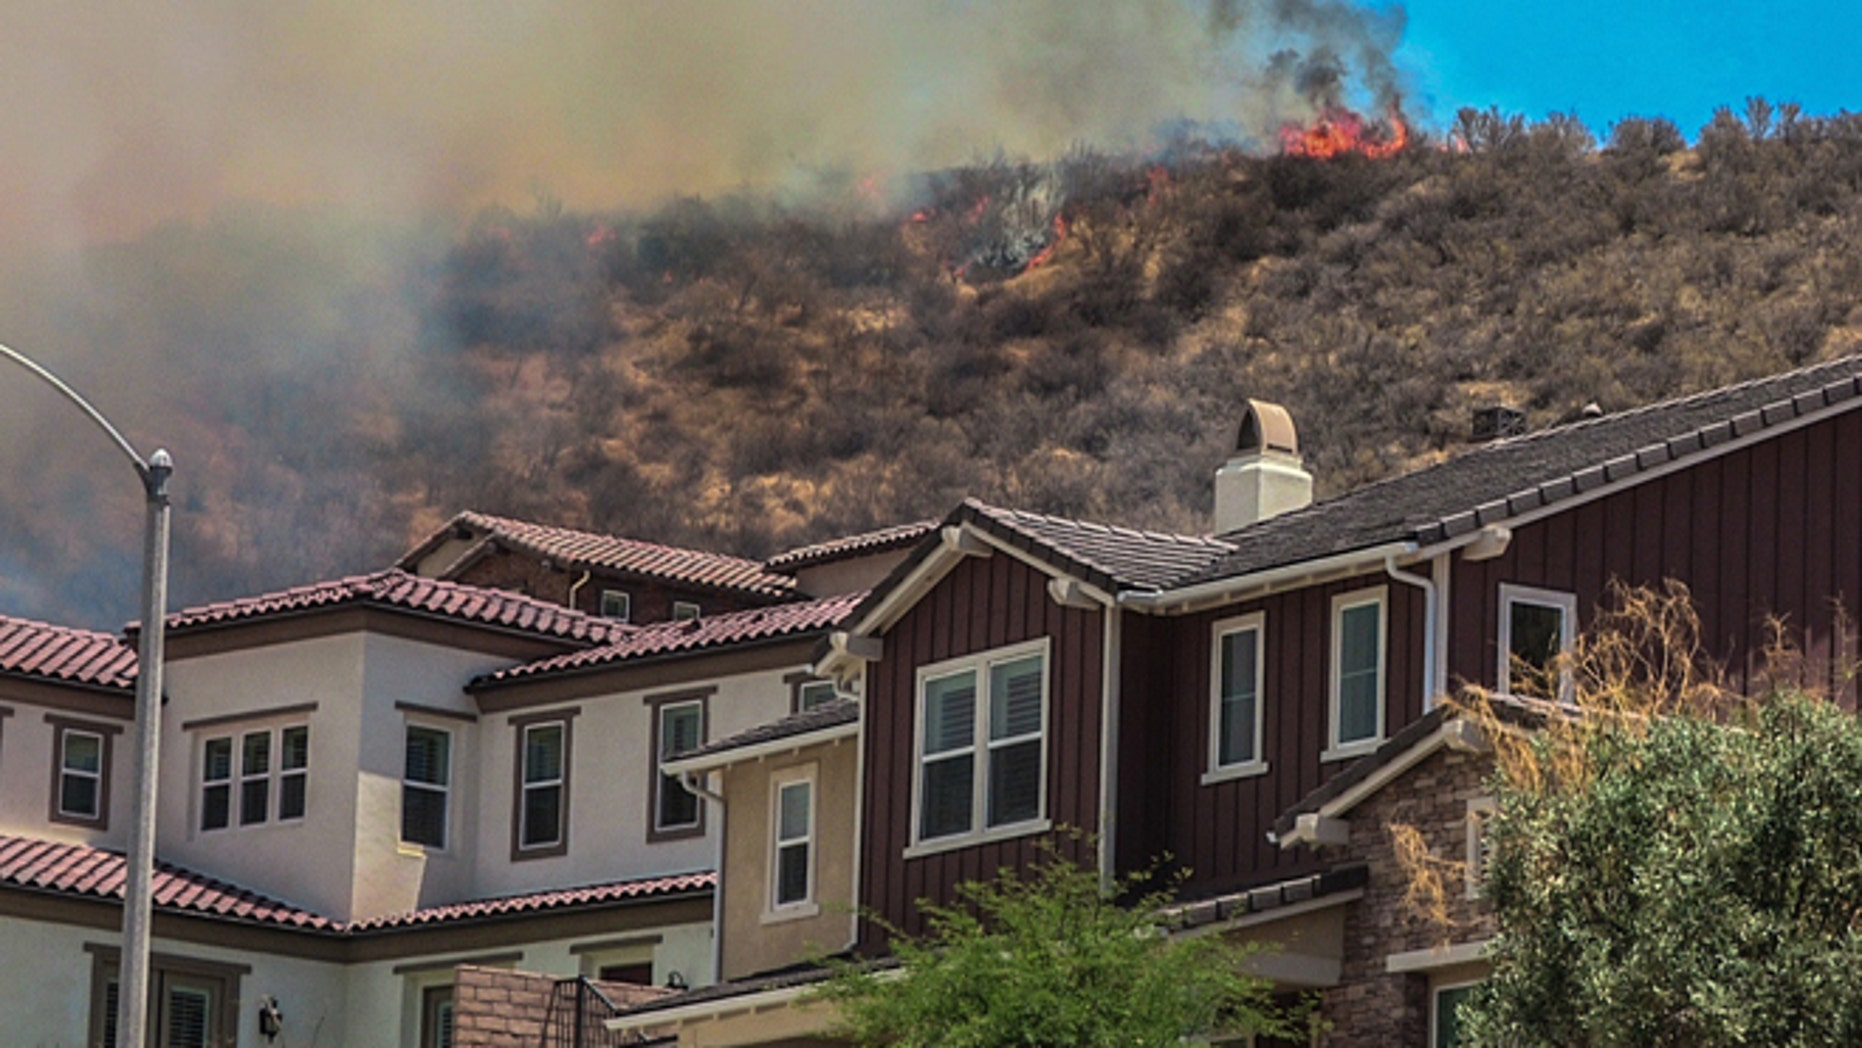 In this July 9, 2016 photo, flames line a hillside behind homes on Old Stone Way as the Sage Fire roared through the Stevenson Ranch area of Santa Clarita, Calif. A fast-moving brush fire north of Los Angeles has sent about 2,000 people fleeing from their homes.  (Austin Dave/The Santa Clarita Valley Signal via AP)